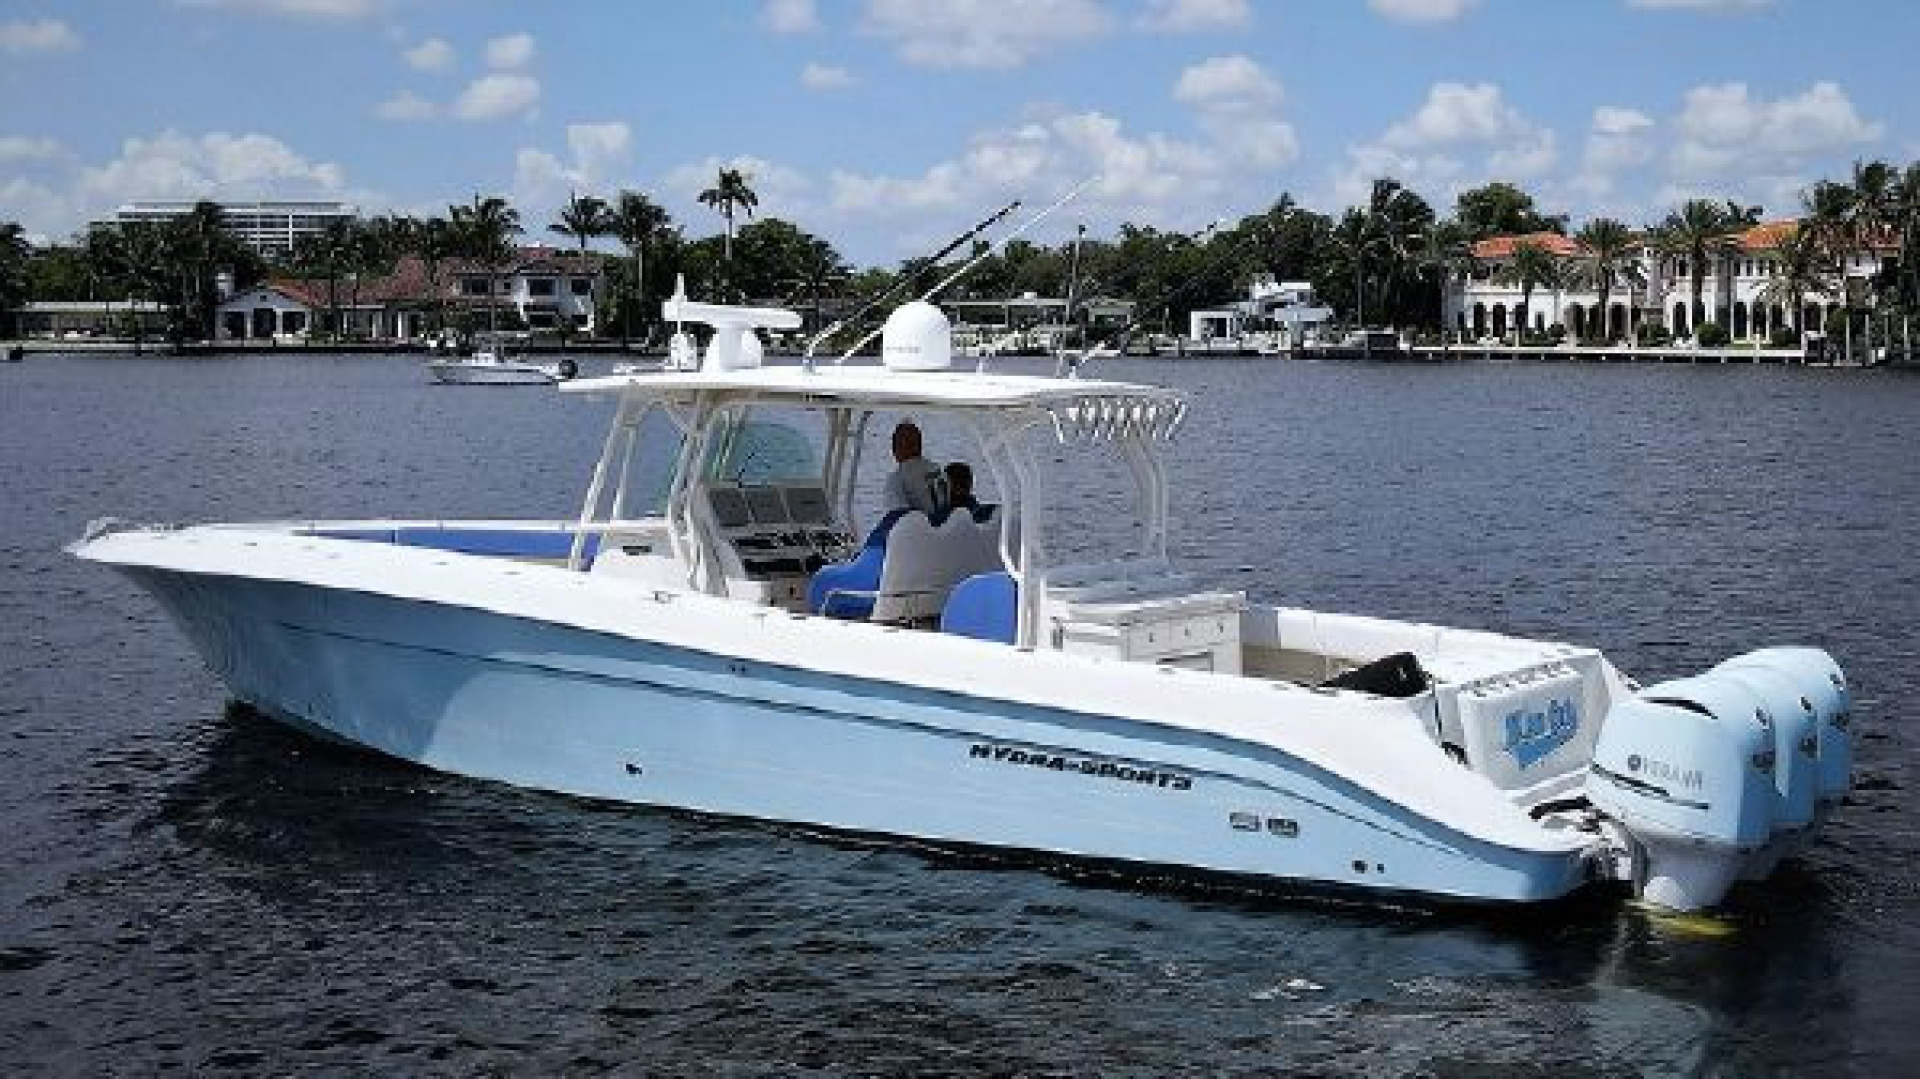 Hydra-Sports-42 Center Console 4200 SF 2011 -Fort Lauderdale-Florida-United States-1564140 | Thumbnail